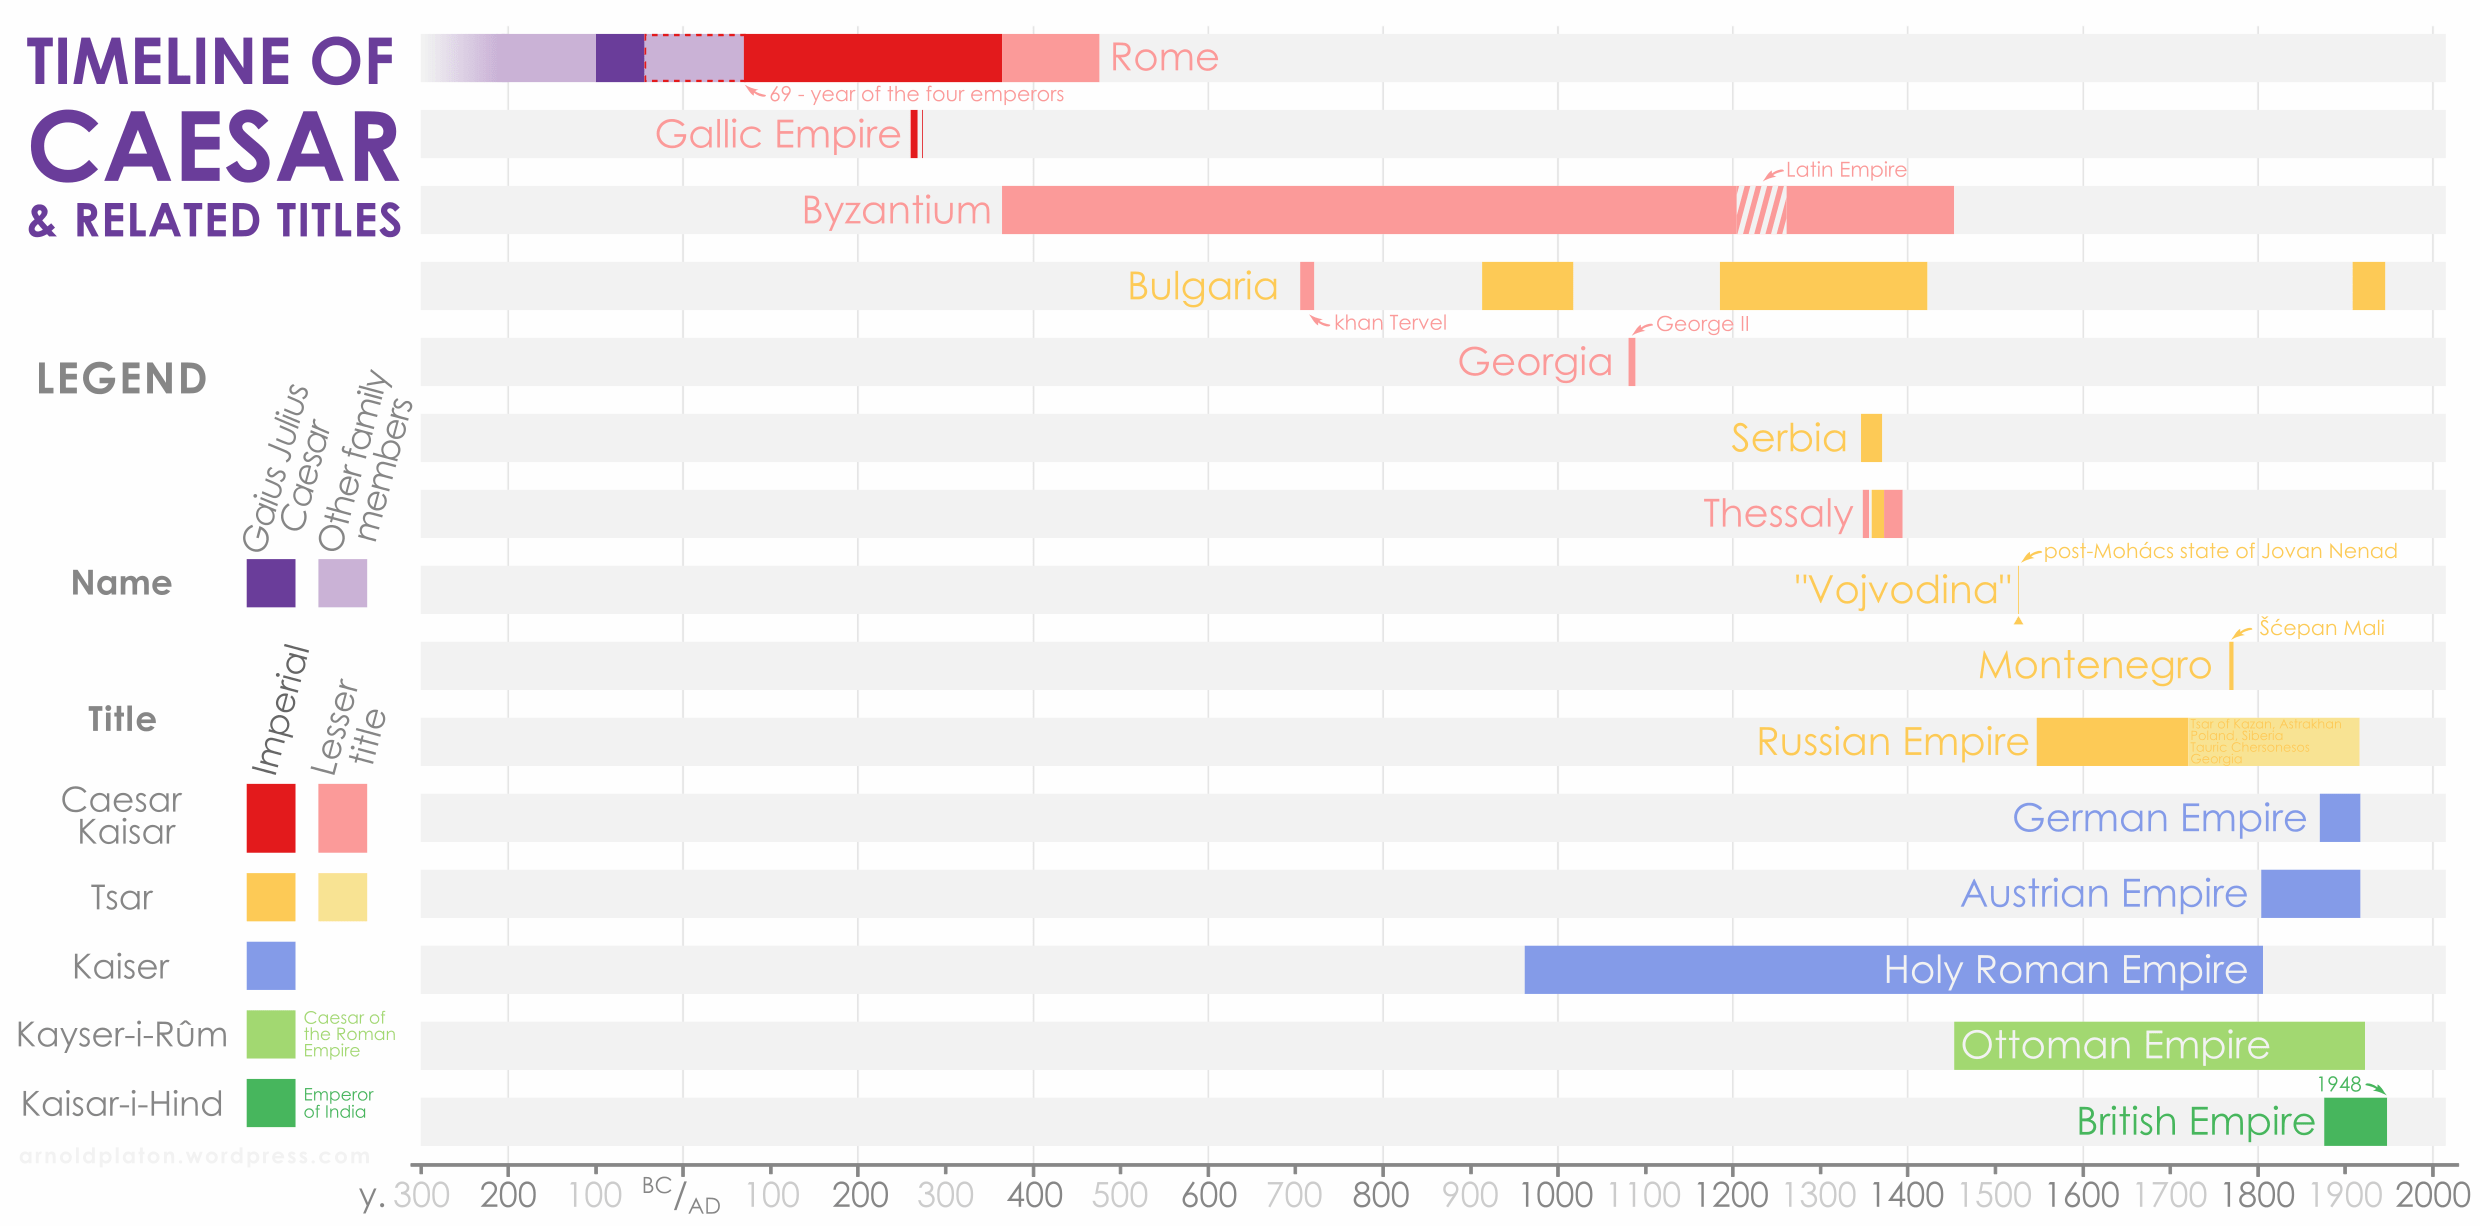 Timeline Of Caesar And Related Imperial Titles Keiser Tsar Oc Dataisbeautiful